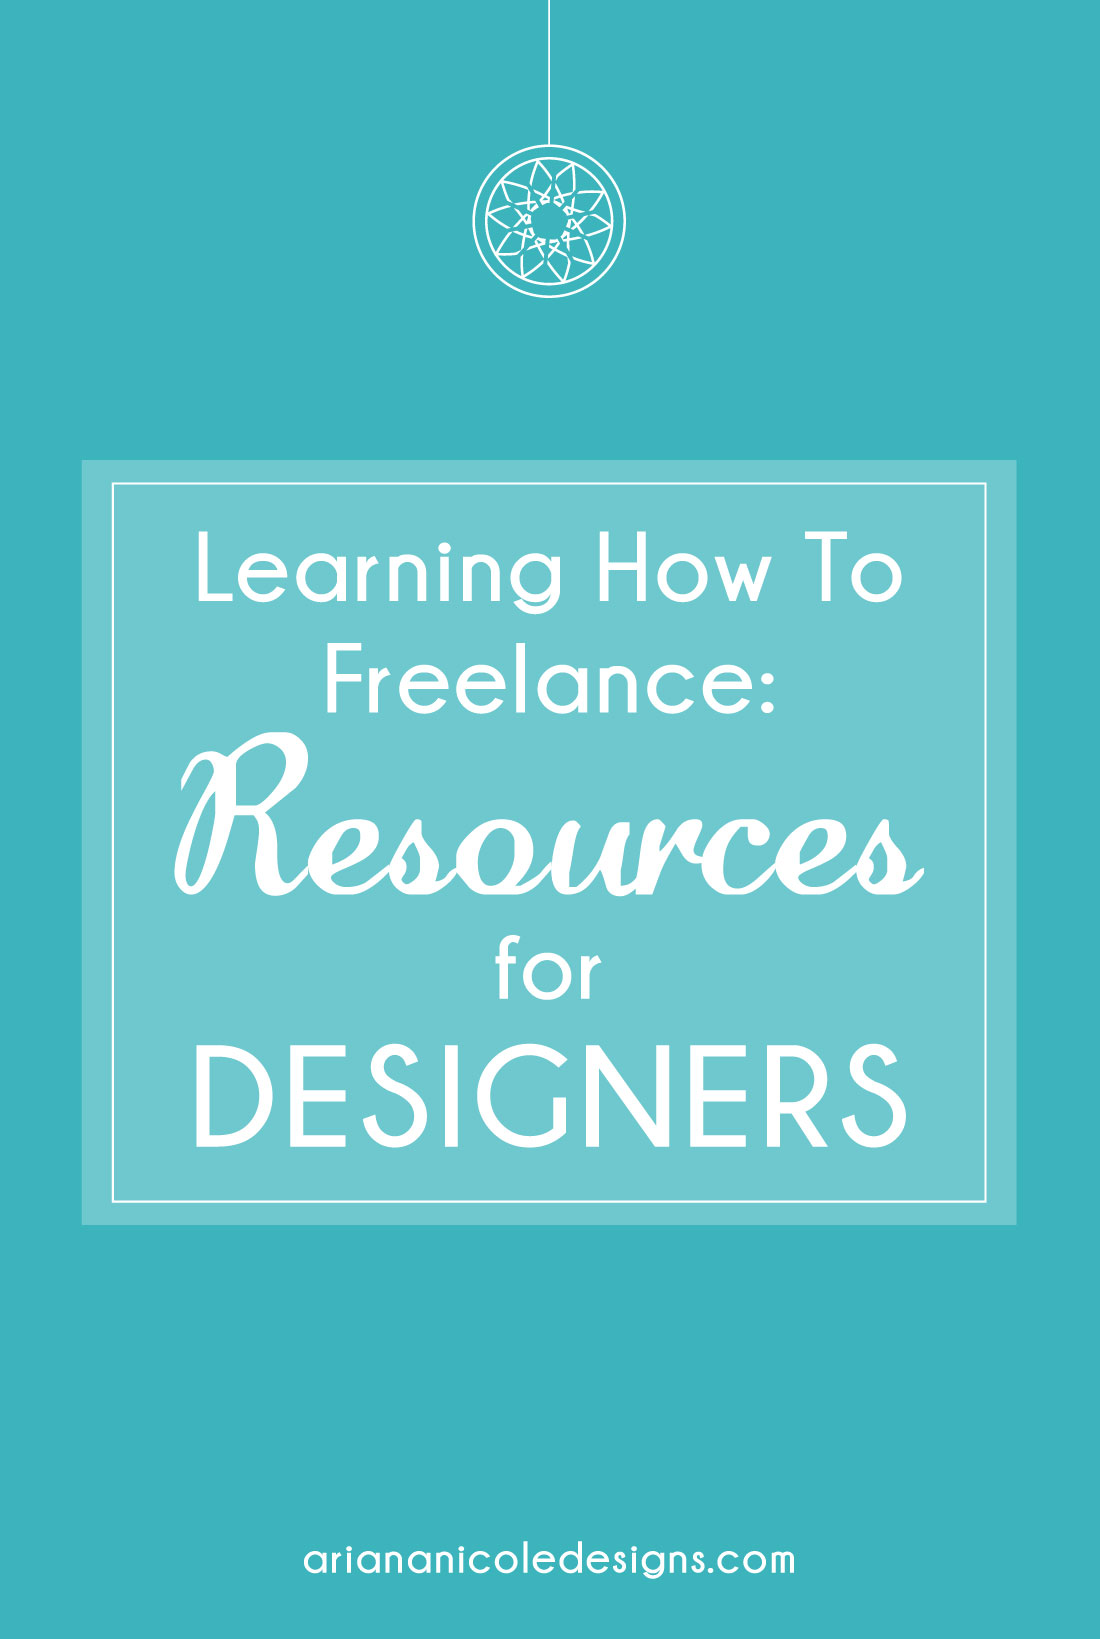 Learning_How_To_Freelance_Resources_for_Designers-1100